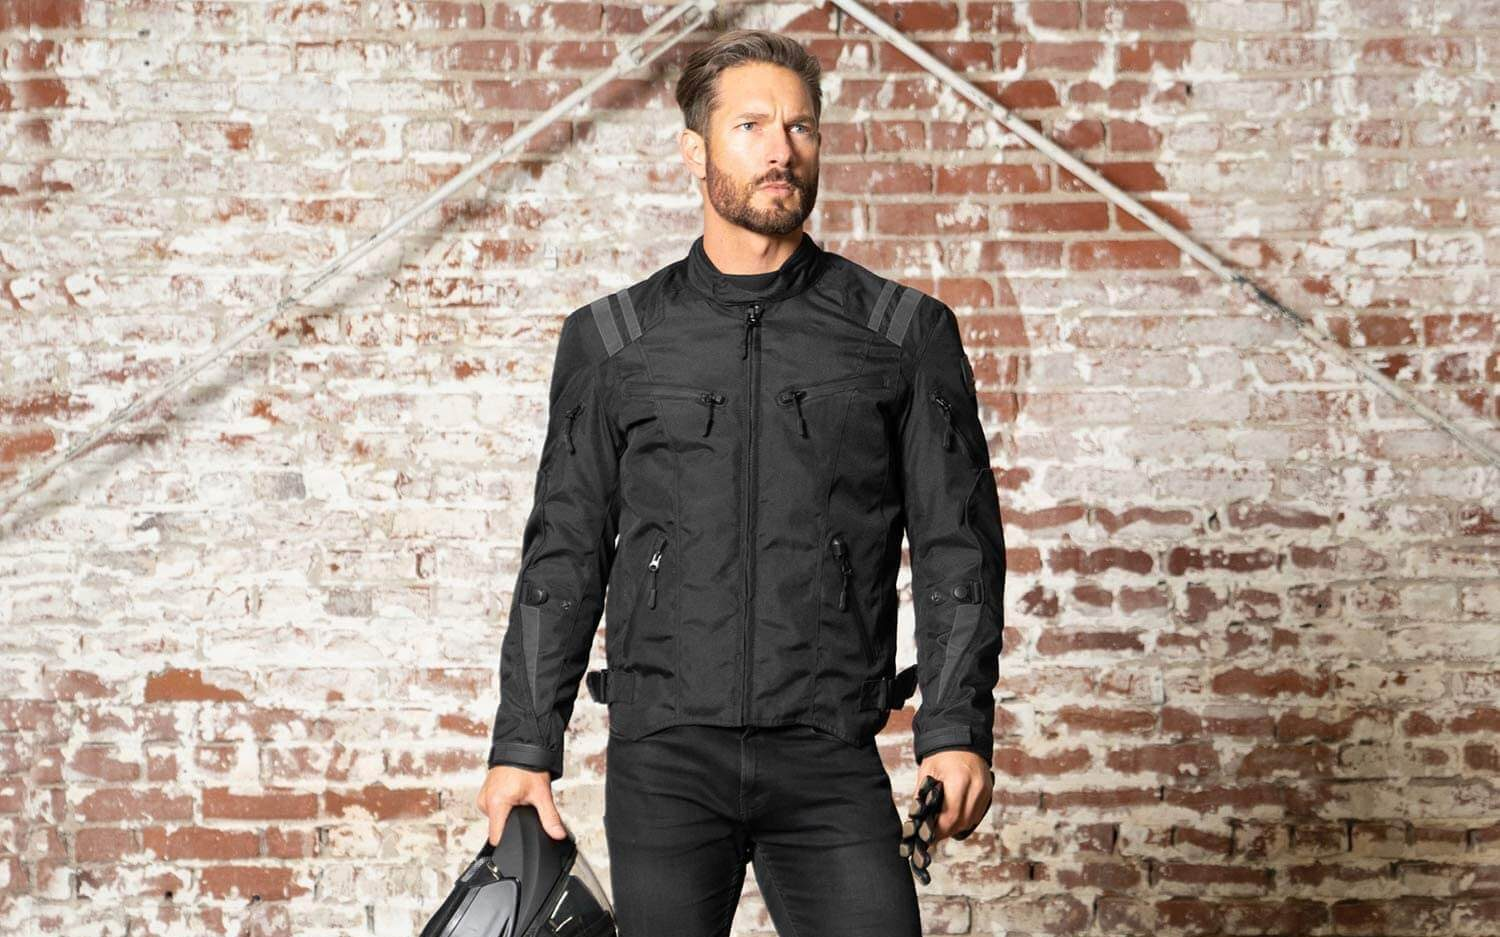 best motorcycle jacket under $200